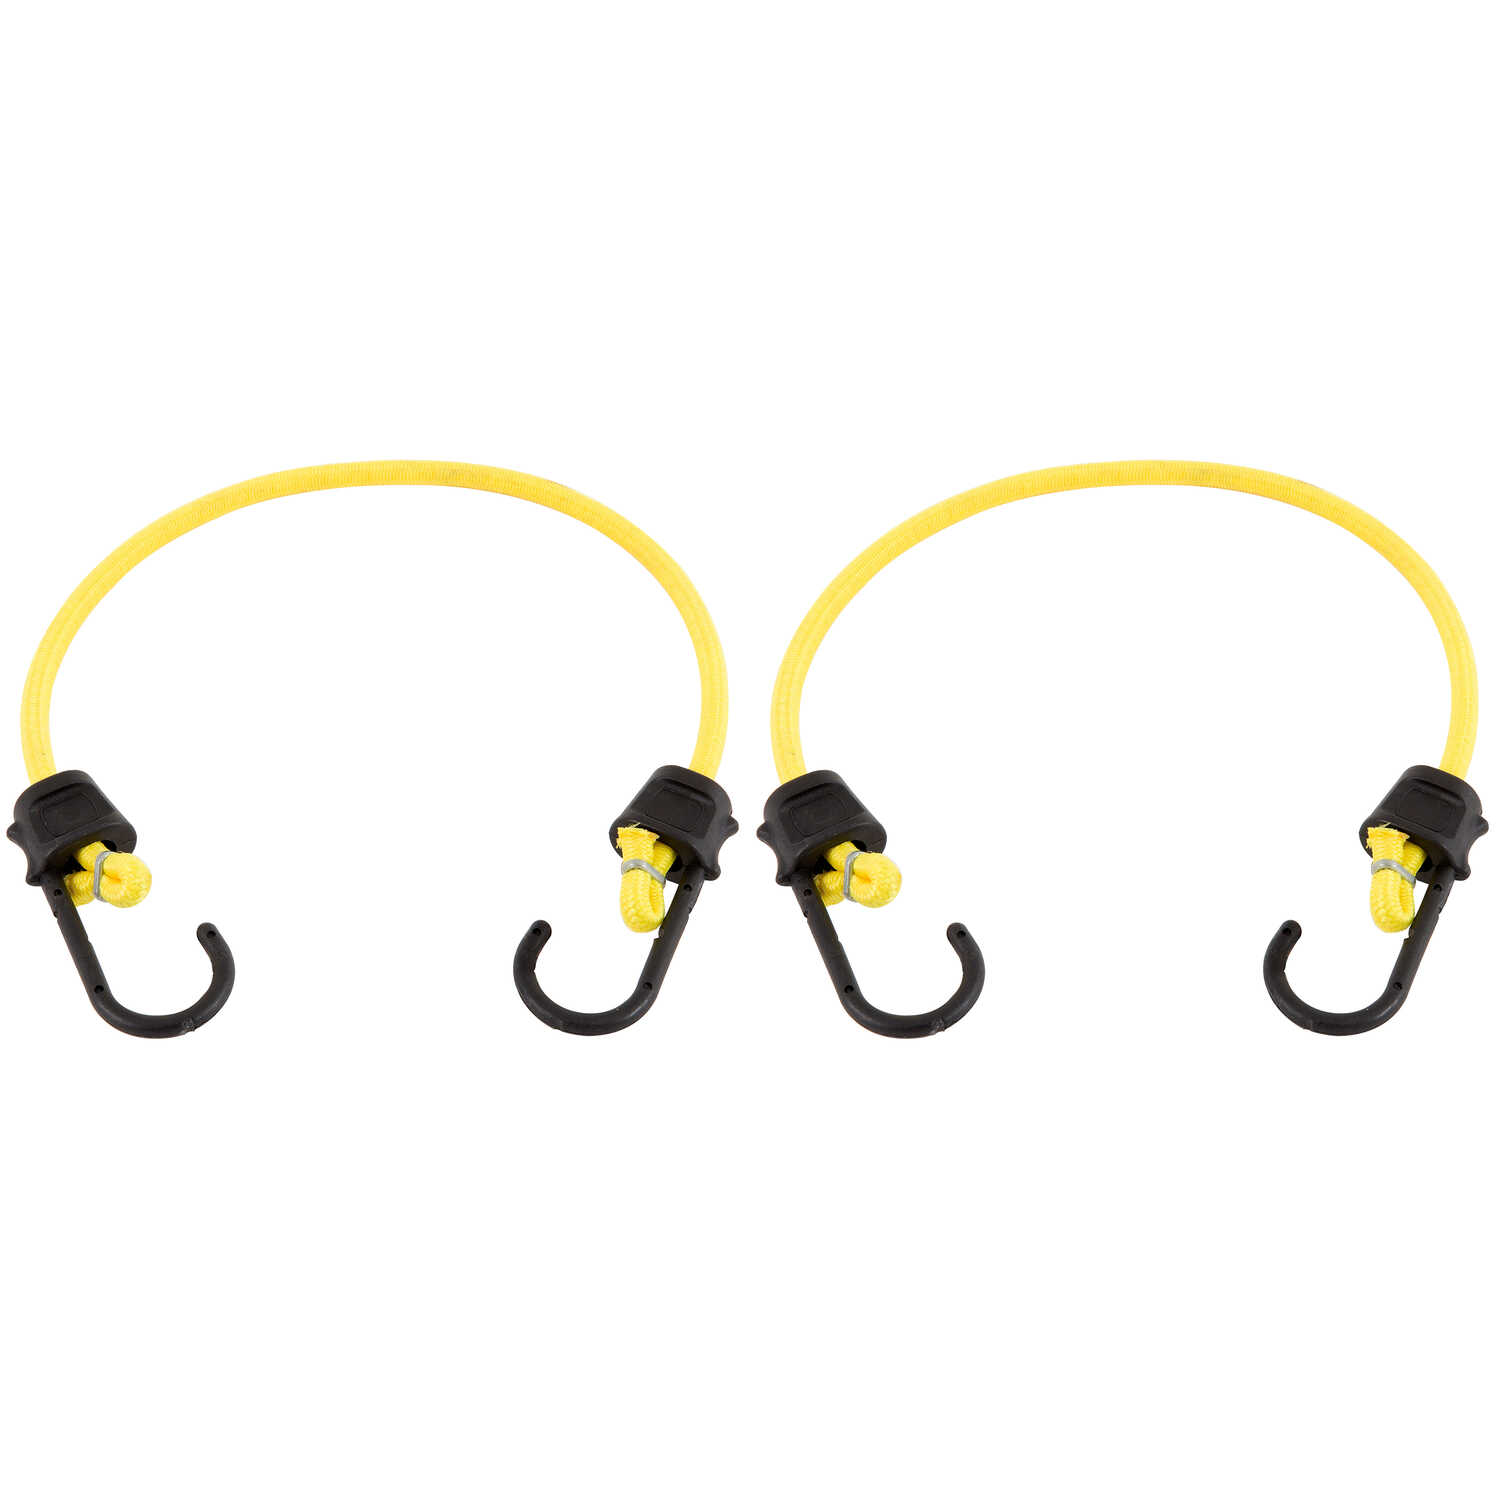 Keeper  Yellow  Bungee Cord  24 in. L x 0.315 in.  2 pk